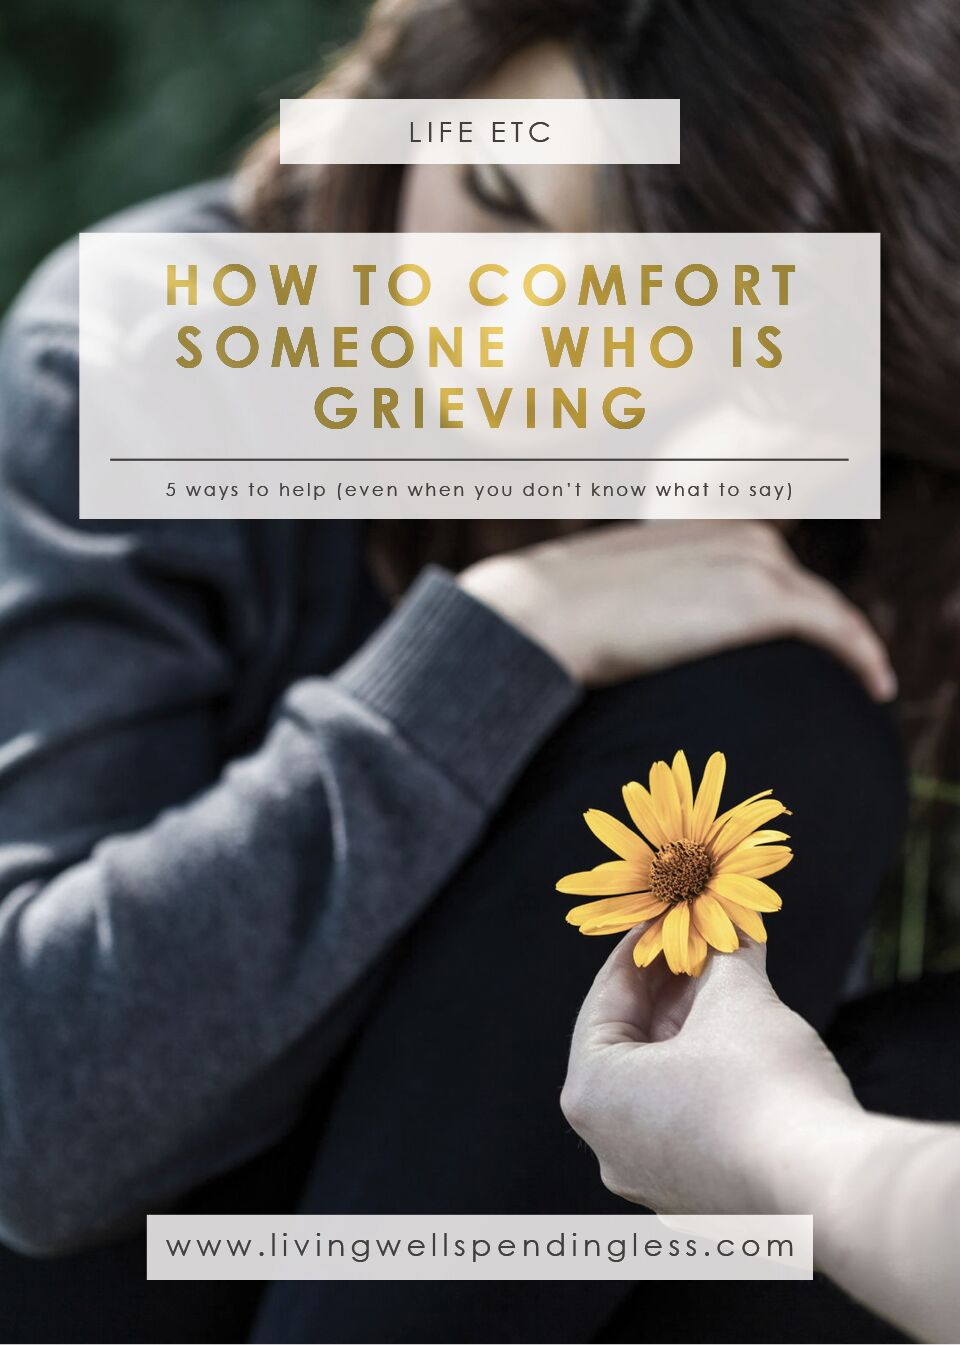 5 Ways to Comfort Someone Who is Grieving | Helping a Grieving Friend | Ways to Sympathize | Dealing with Grief | Art of Condolence